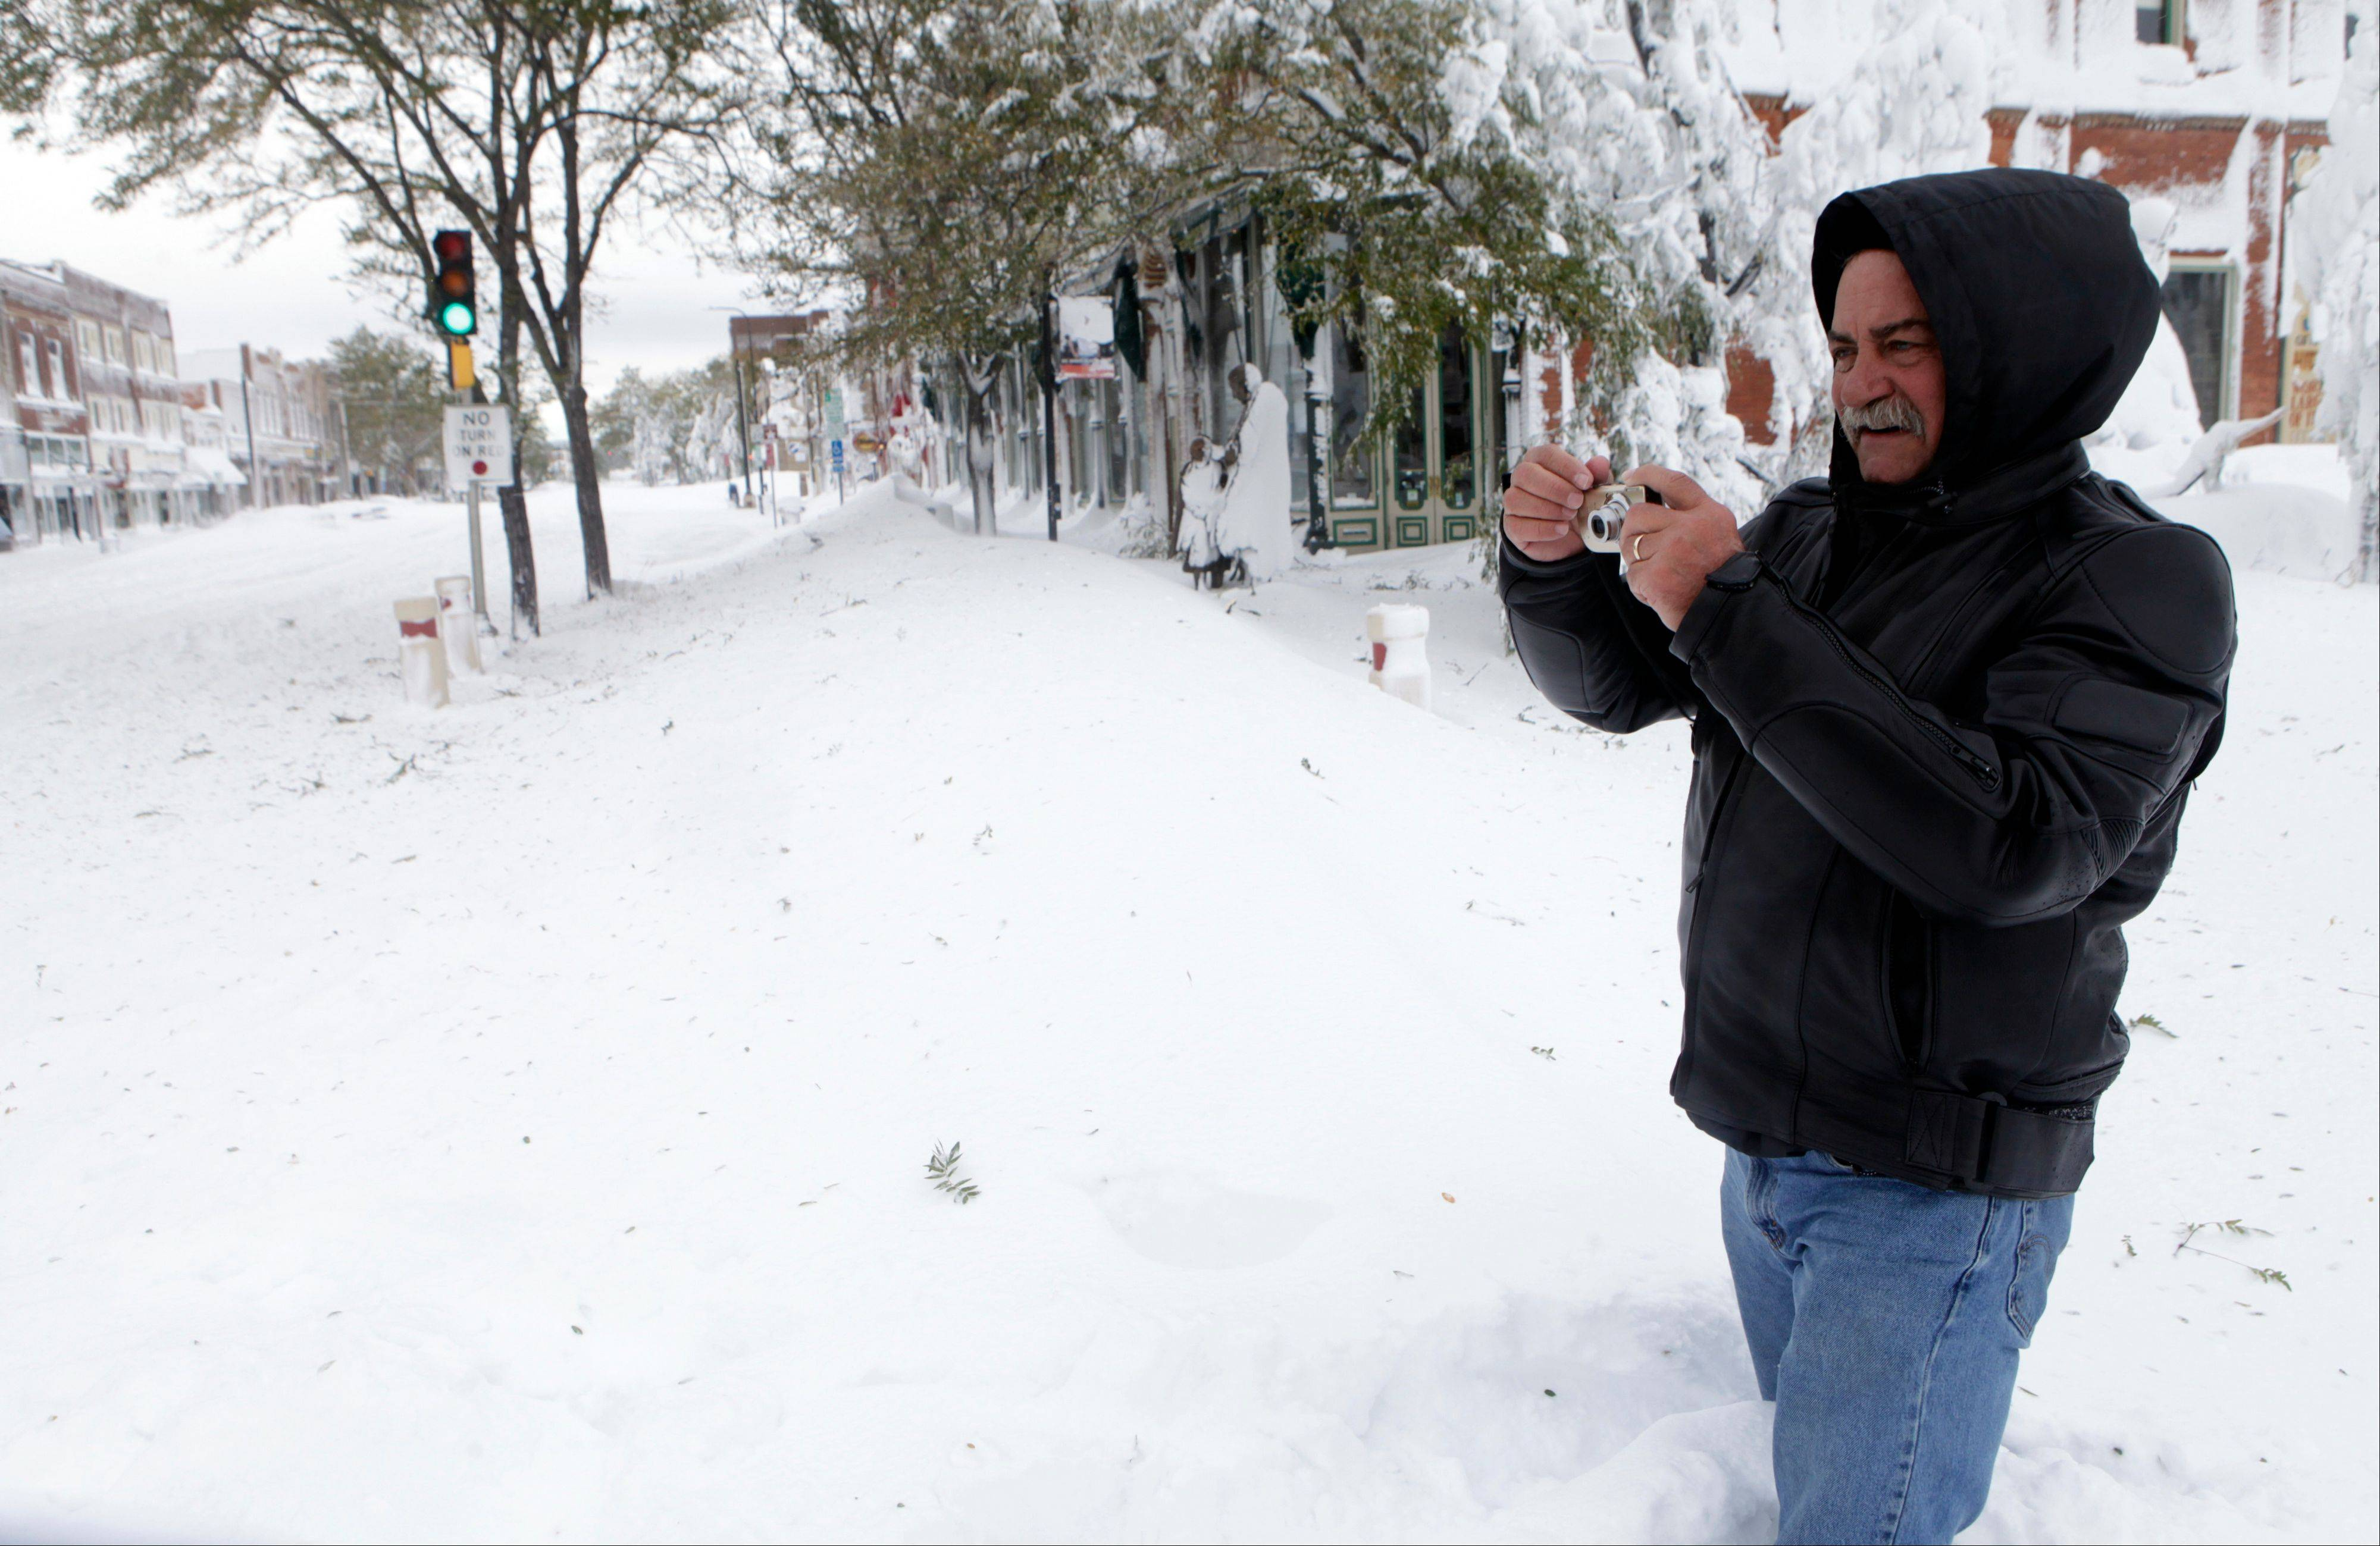 Mike Vonner stands in a snowdrift while taking photos of the blizzard in downtown Rapid City, S.D., Saturday. South Dakota emergency agencies are asking snowmobile operators in the Rapid City area to help find motorists stranded by an autumn storm.